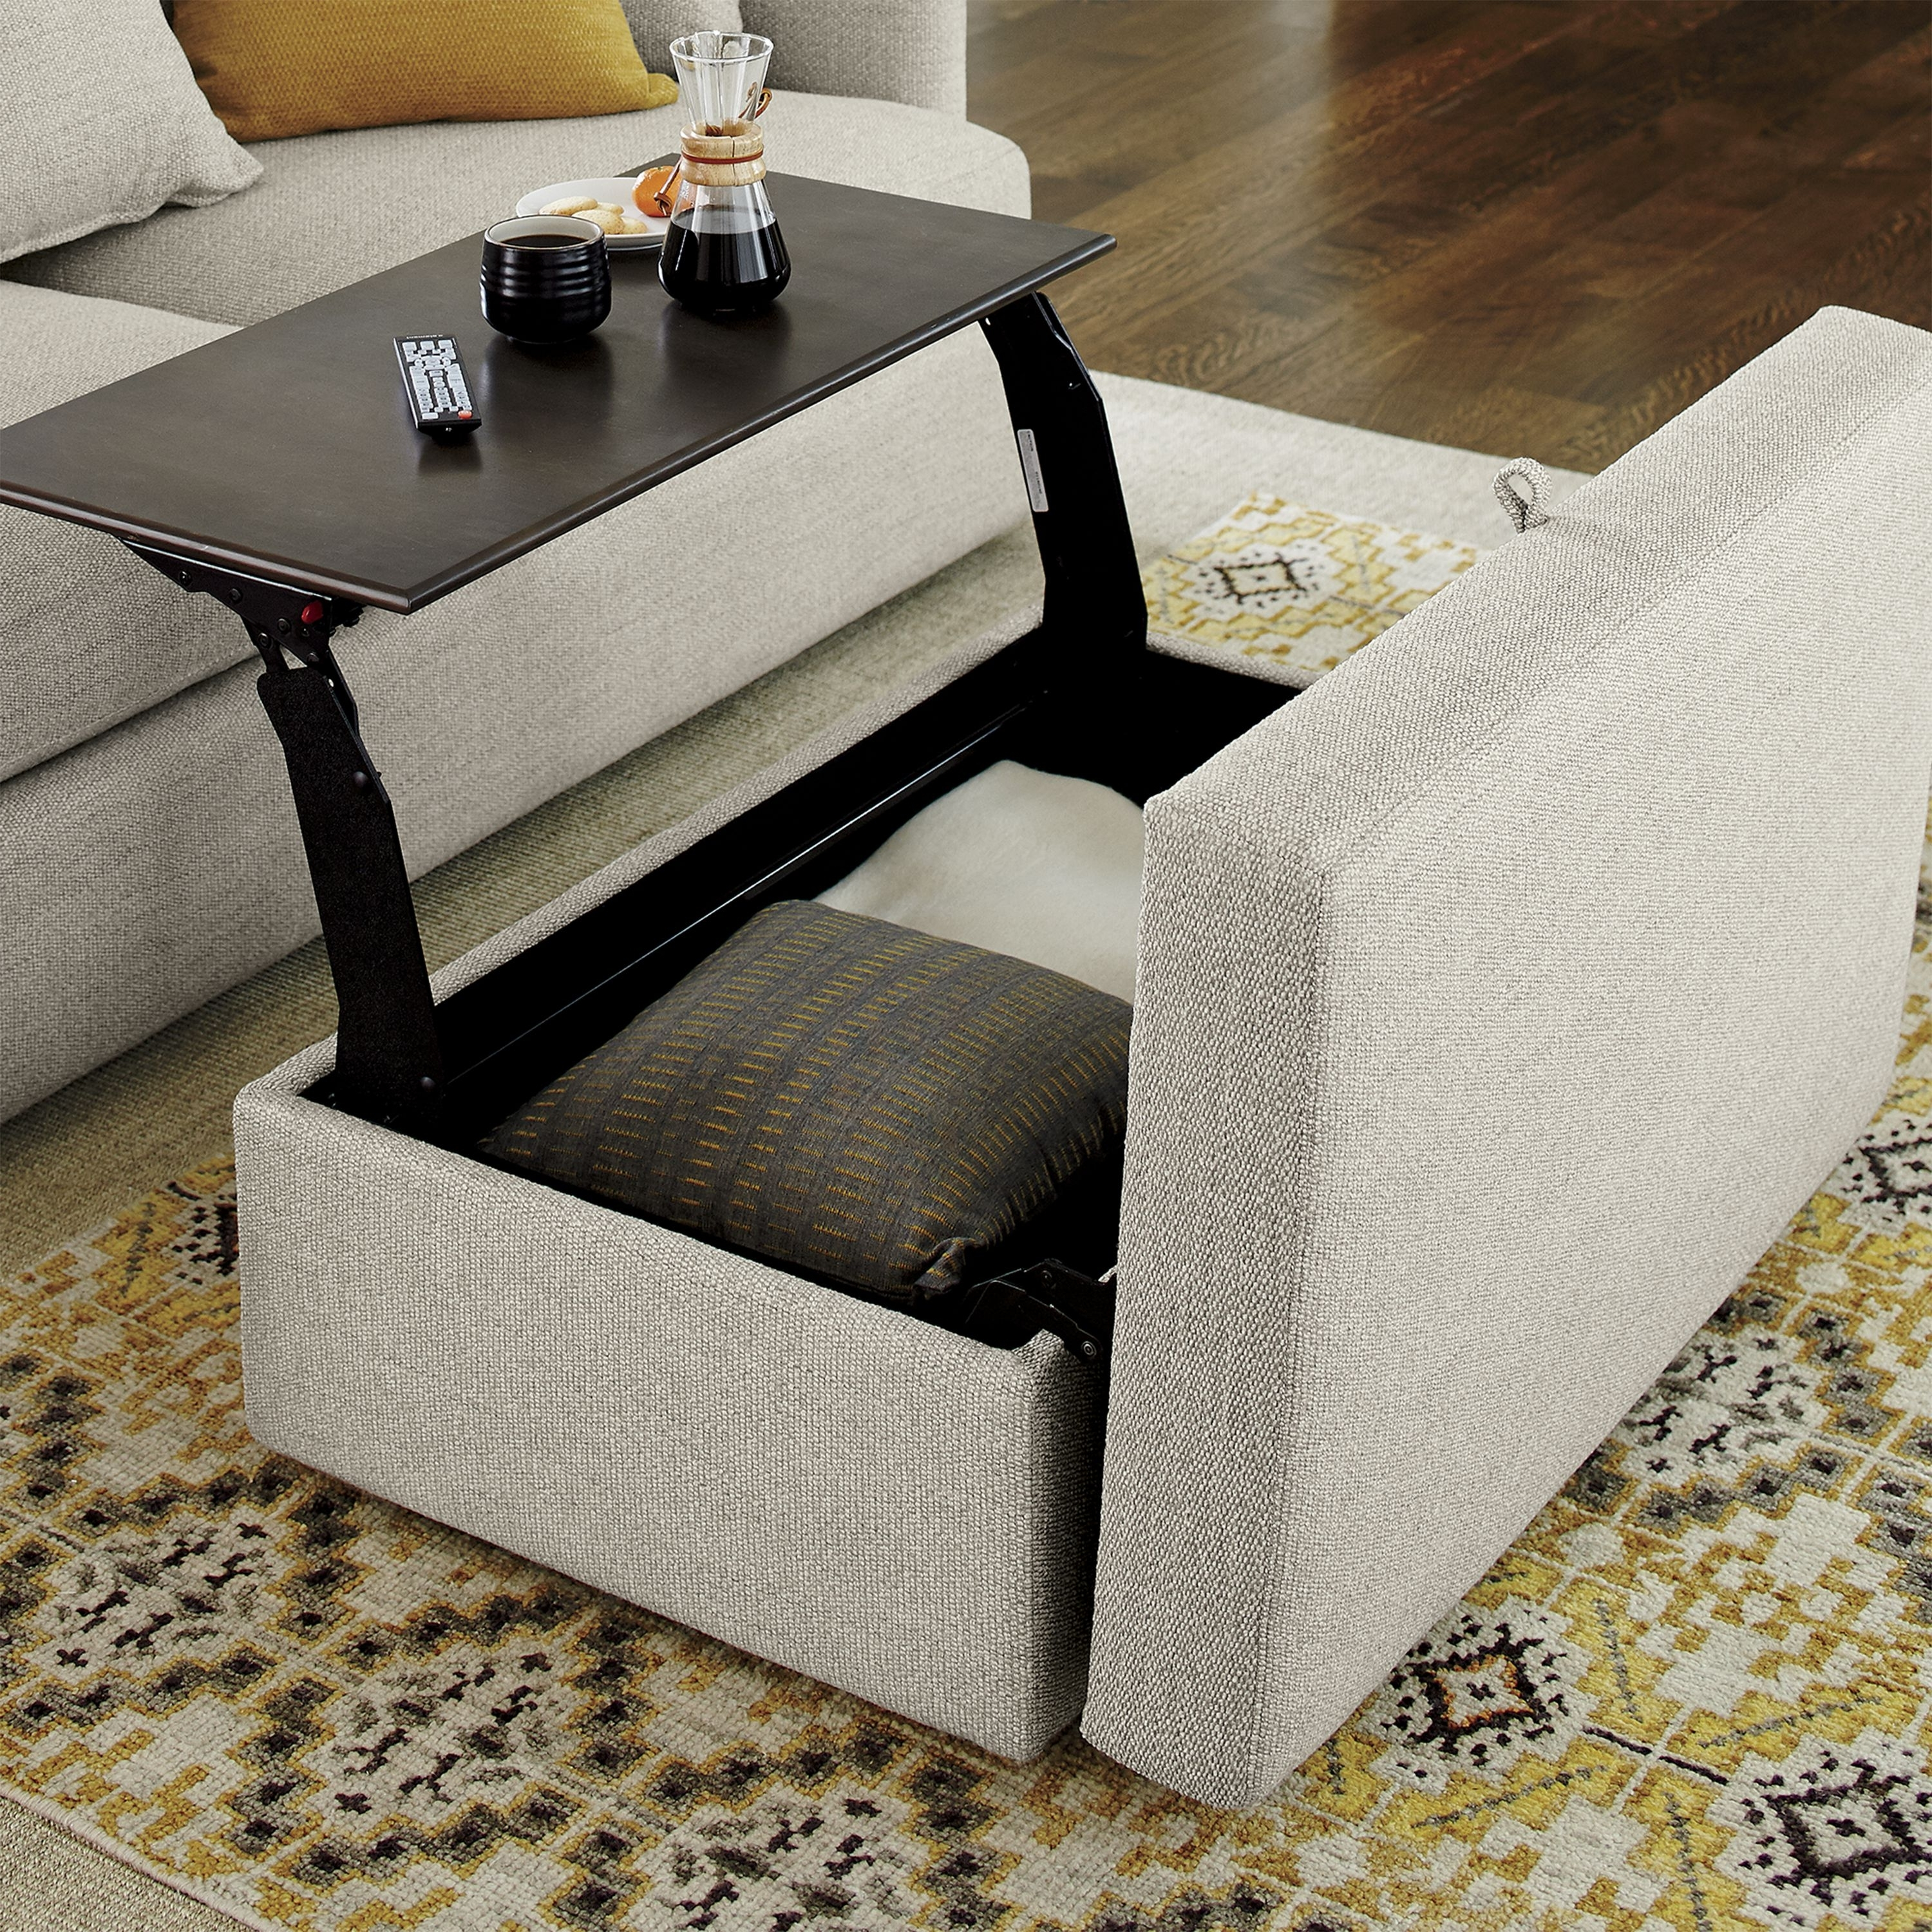 Ottomans With Tray In Fashionable Lounge Ii Storage Ottoman With Tray (View 3 of 20)